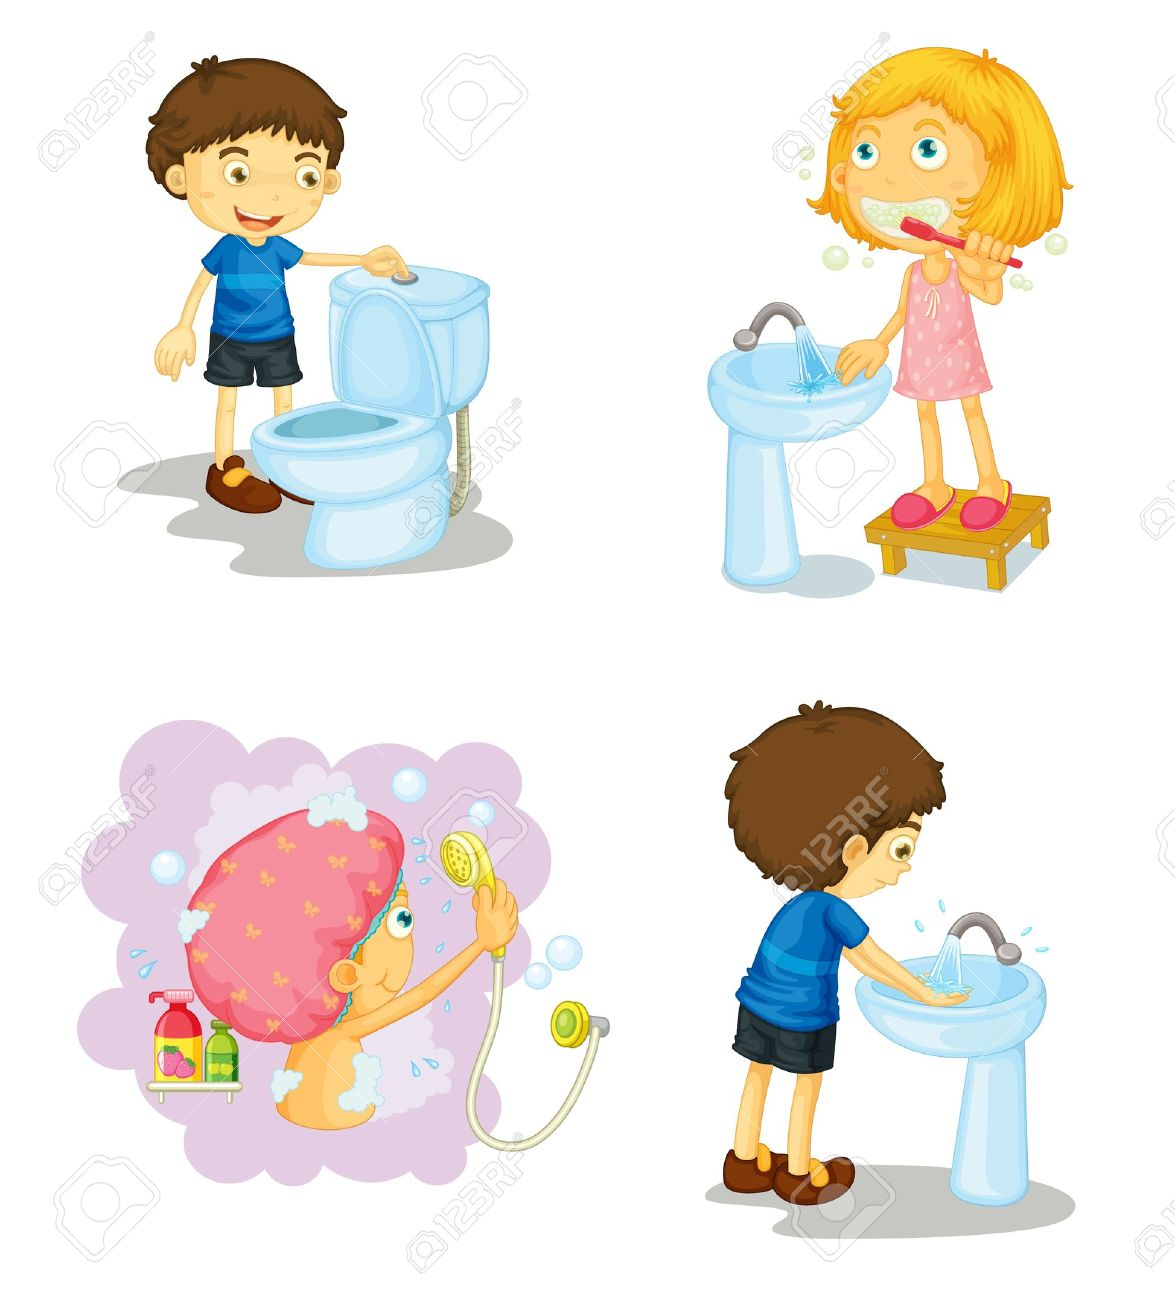 Bathroom sink clip art - Bathroom Sink Illustration Of Kids And Bathroom Accessories On A White Background